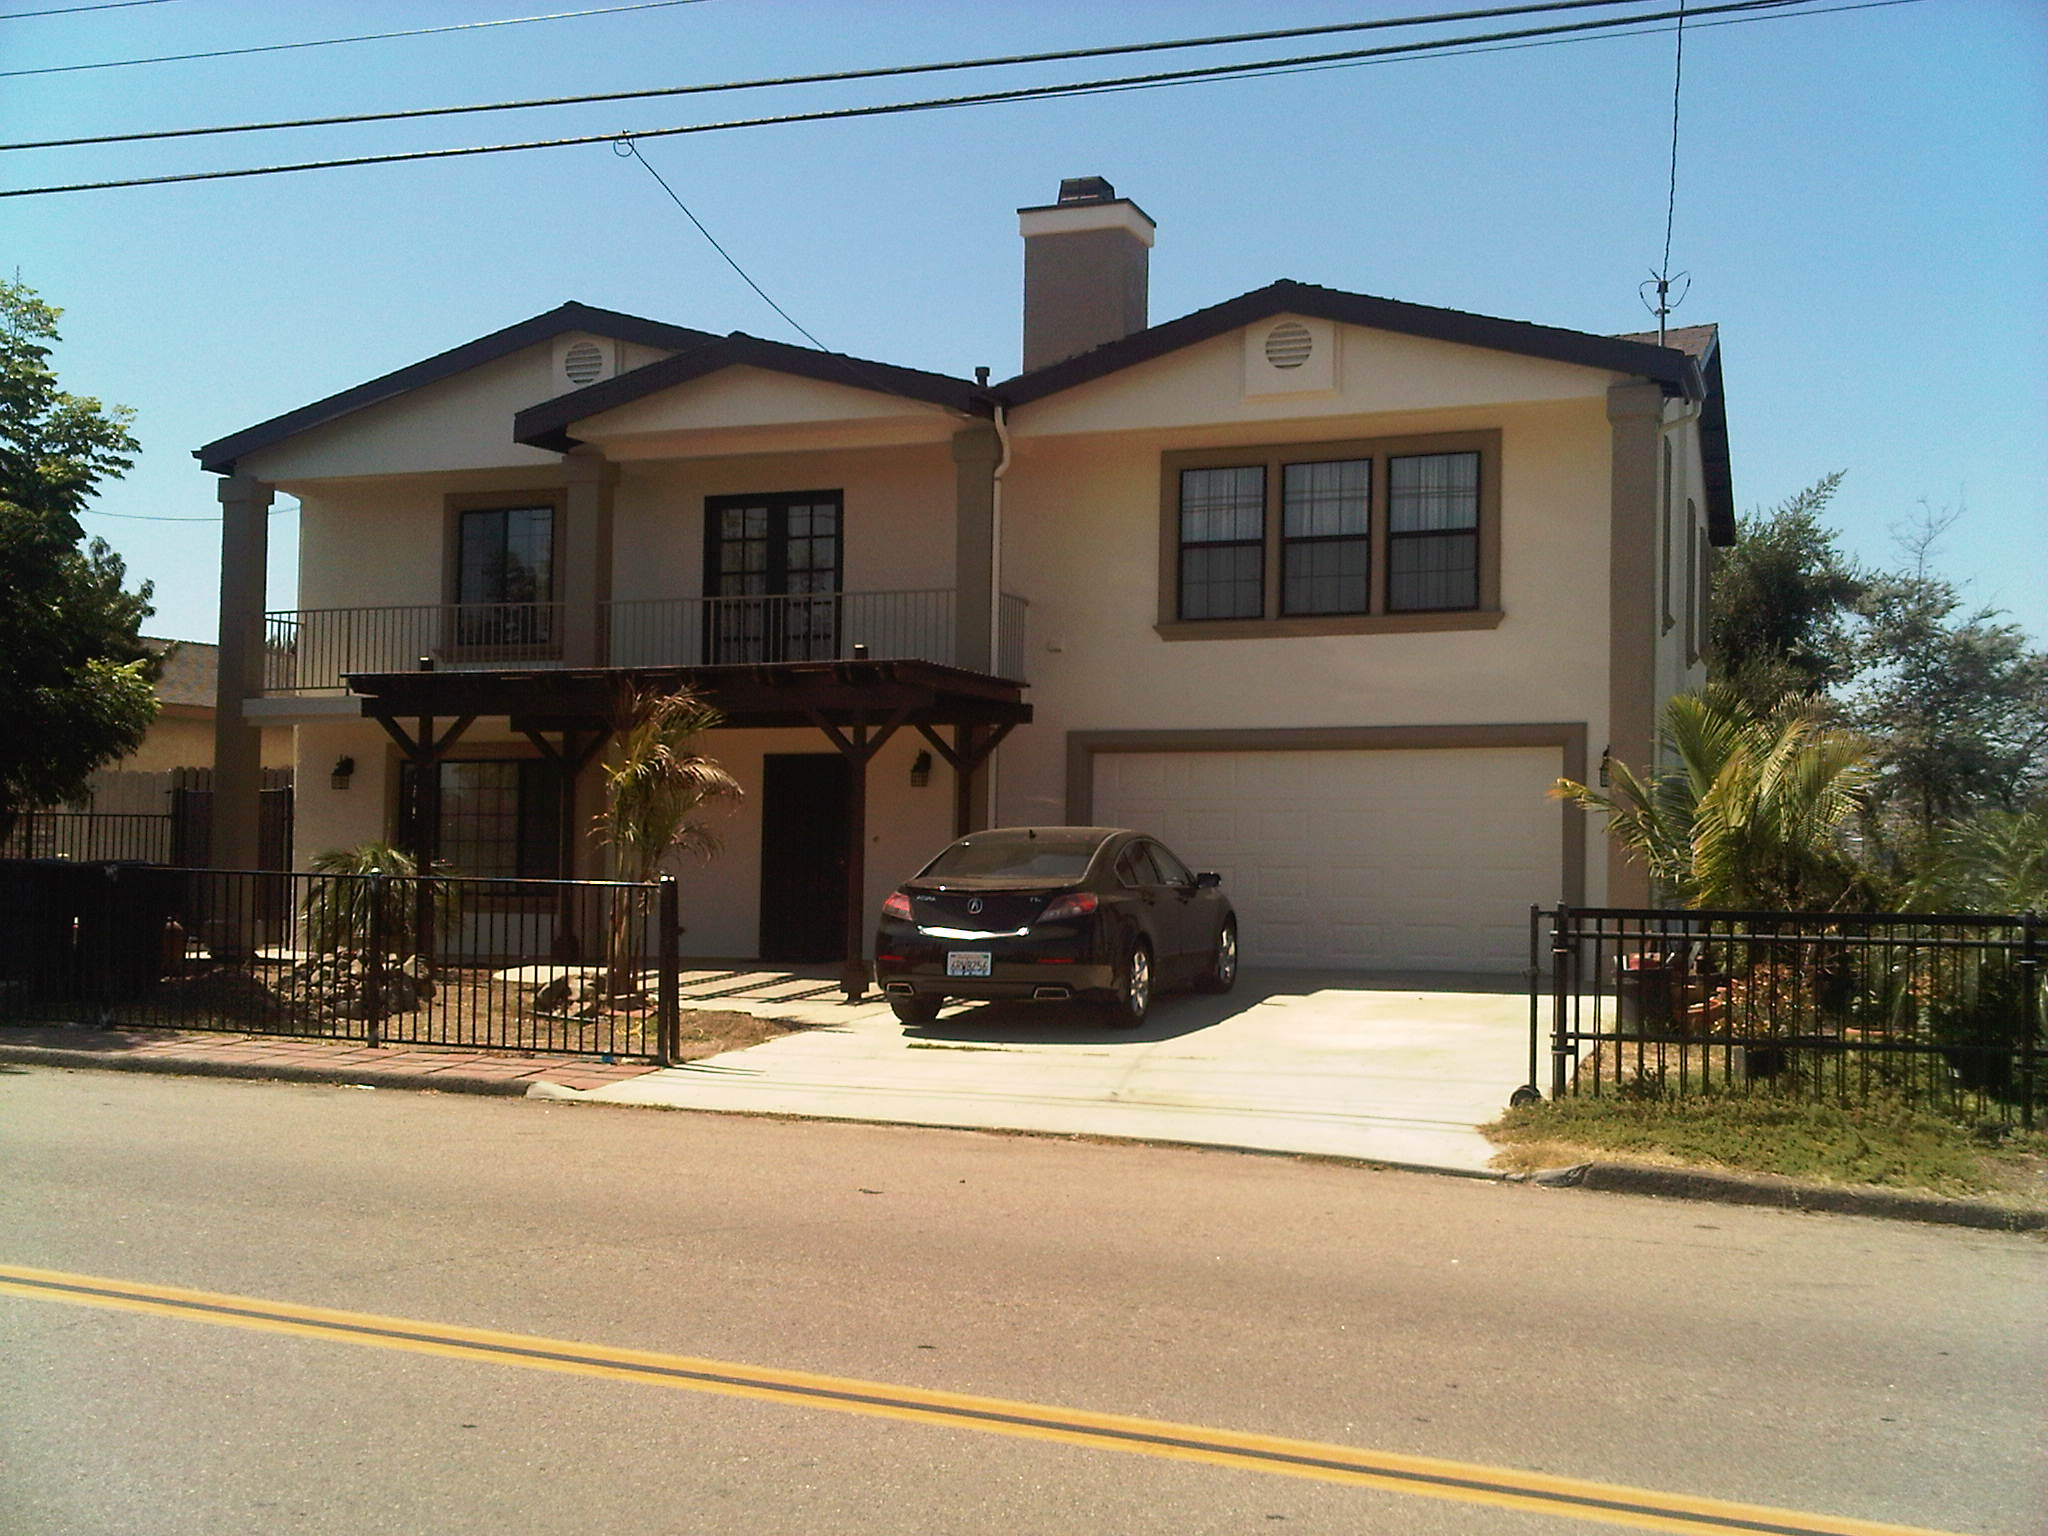 Two story house with new stucco siding color coat is white